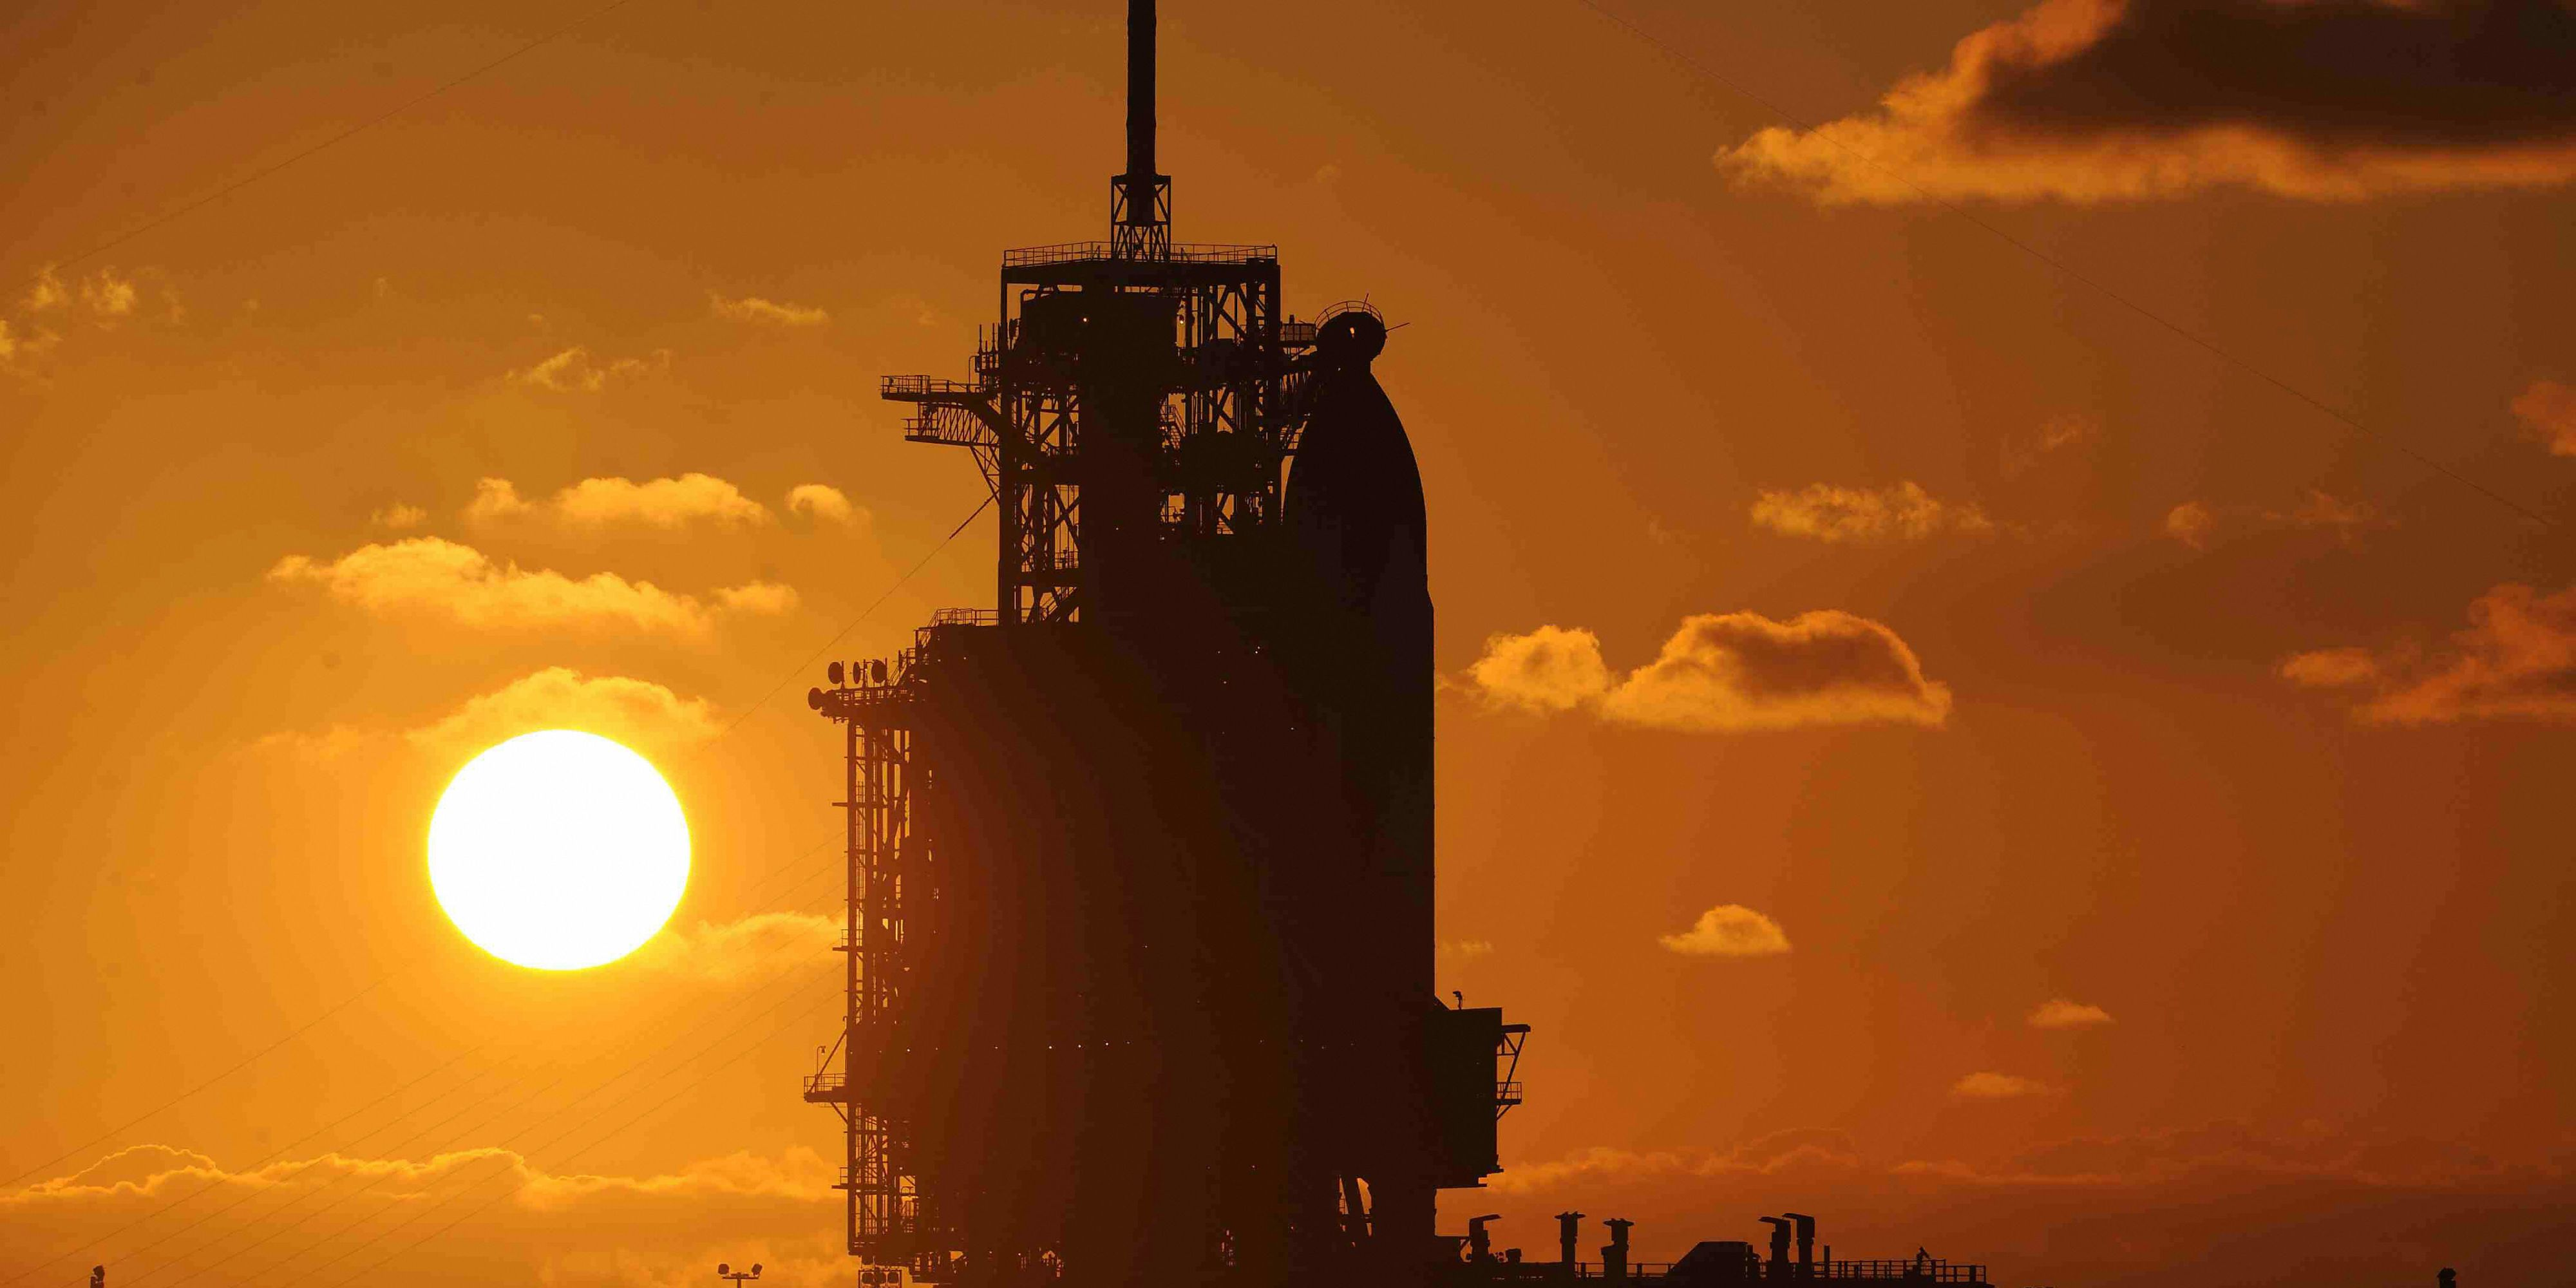 Why Can't We Just Launch Waste Into the Sun?